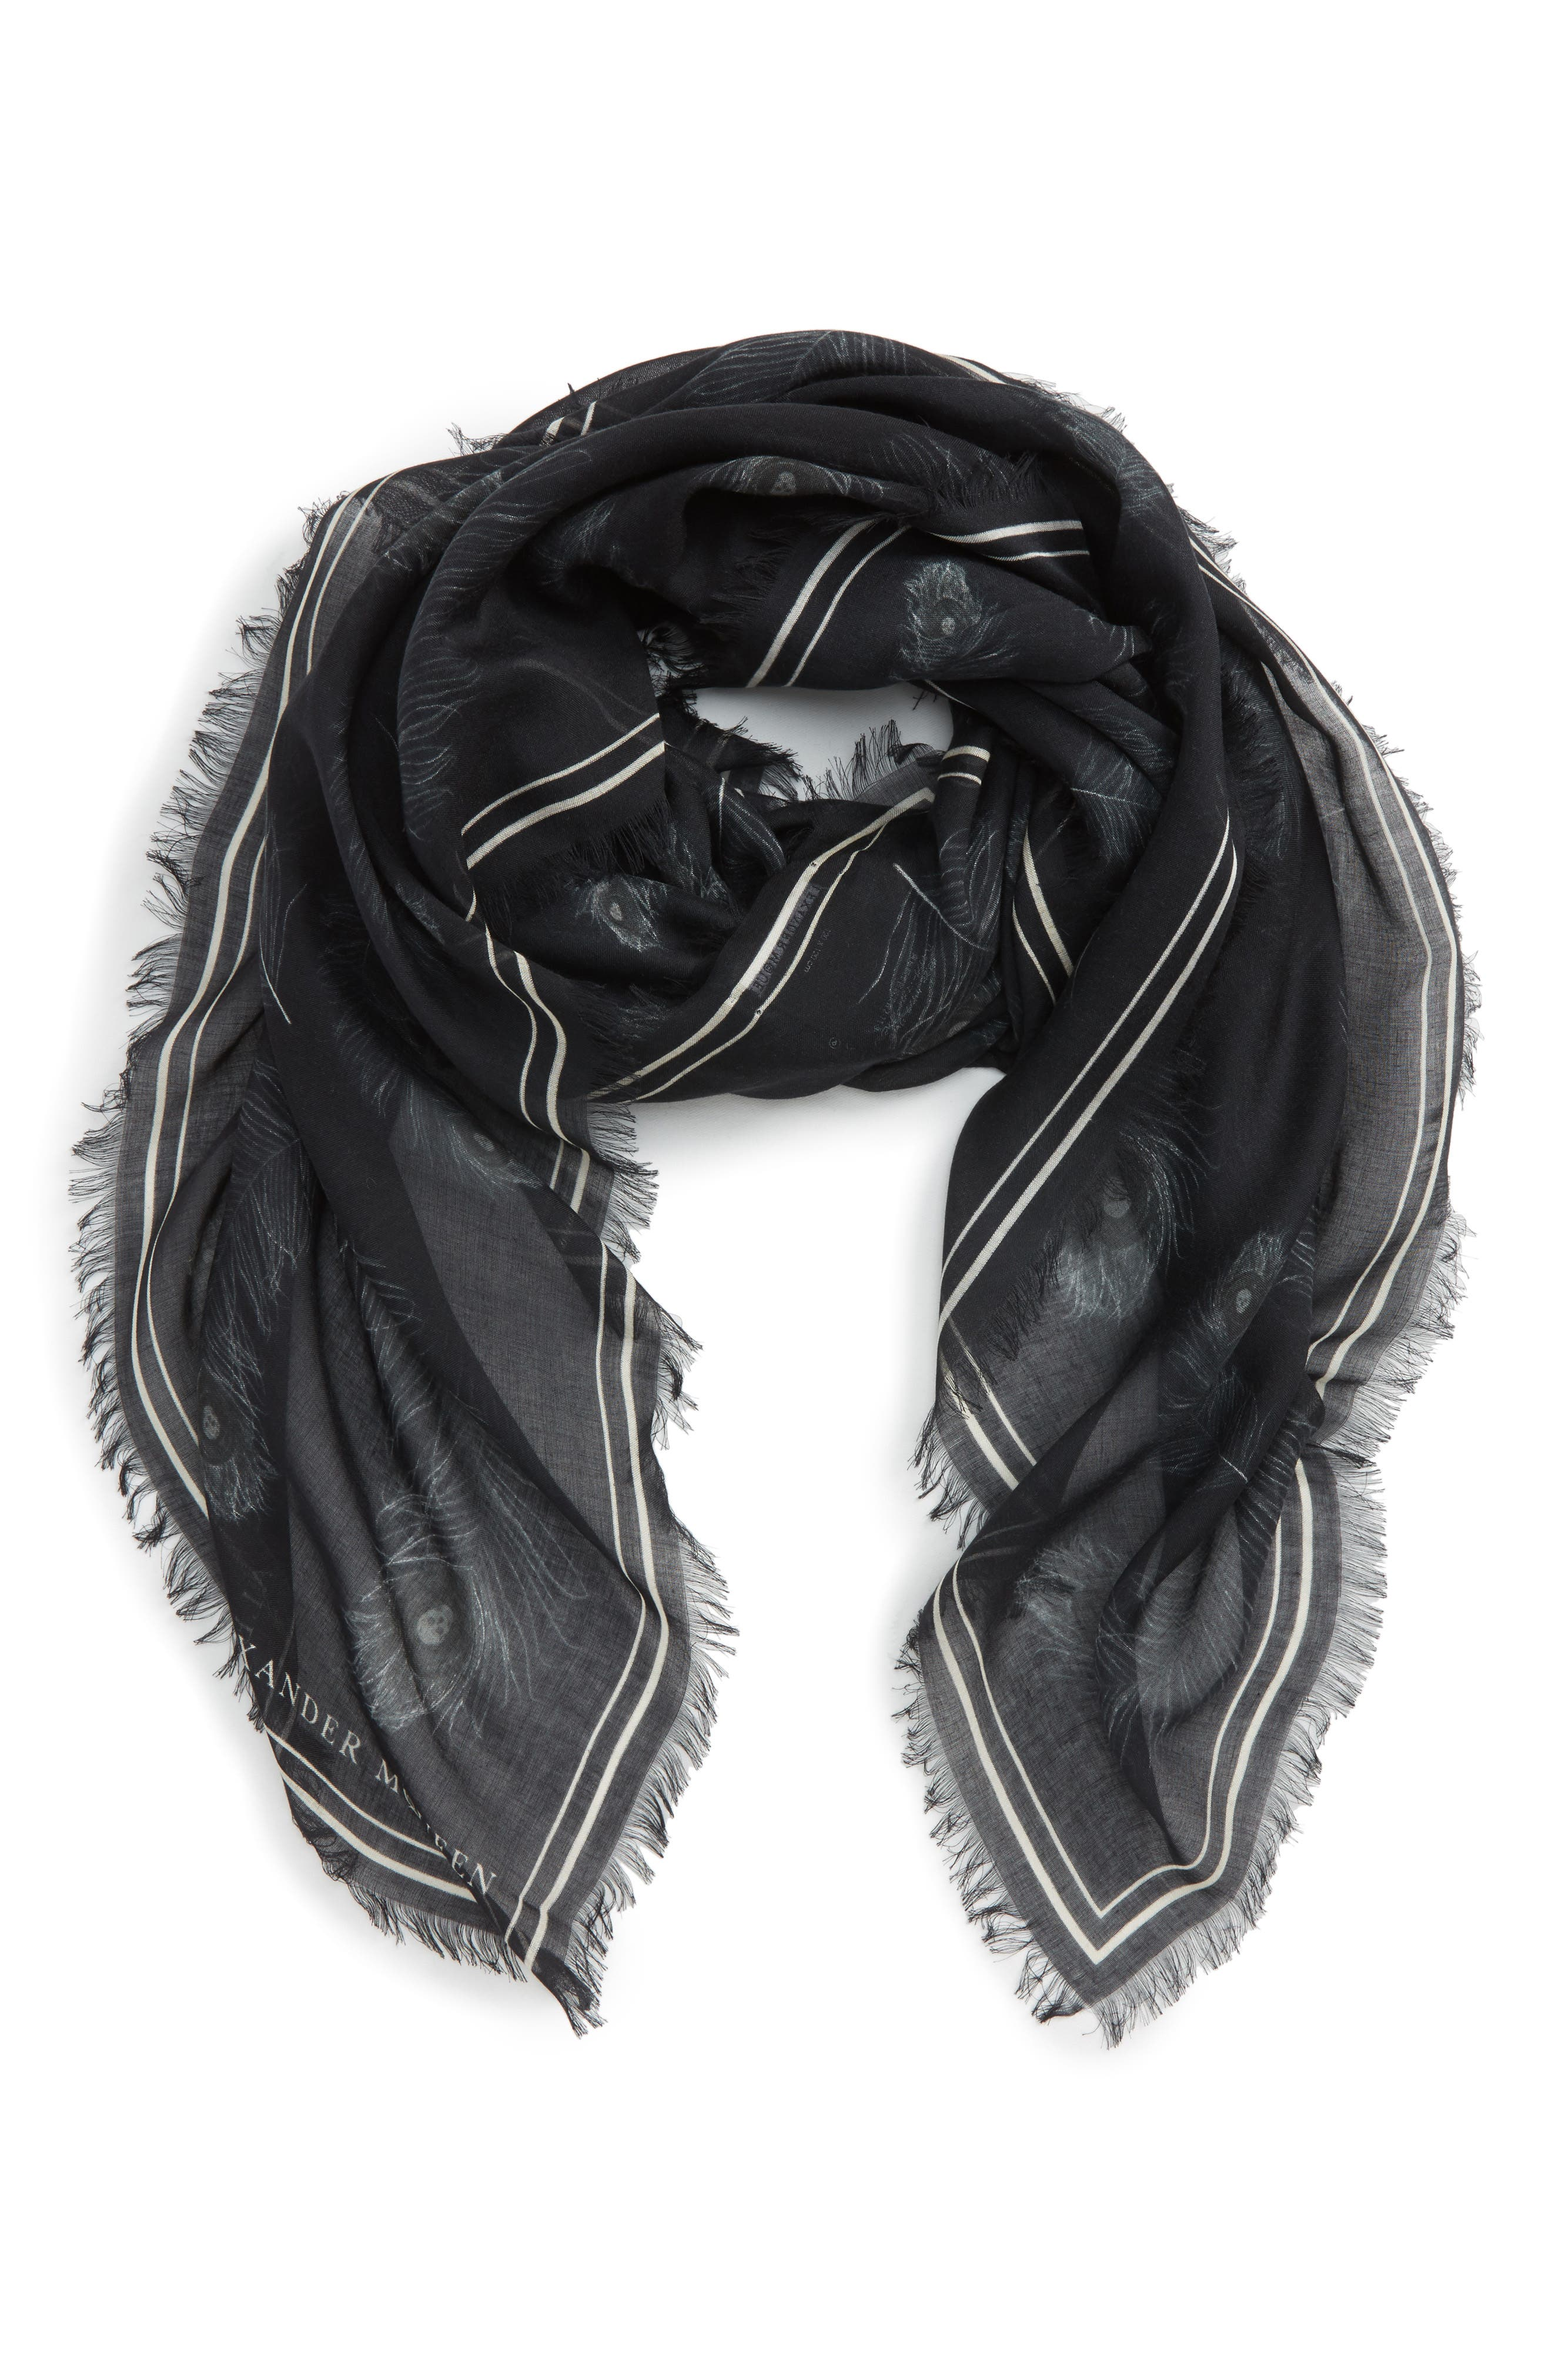 Alexander McQueen Peacock Feather Skull Scarf